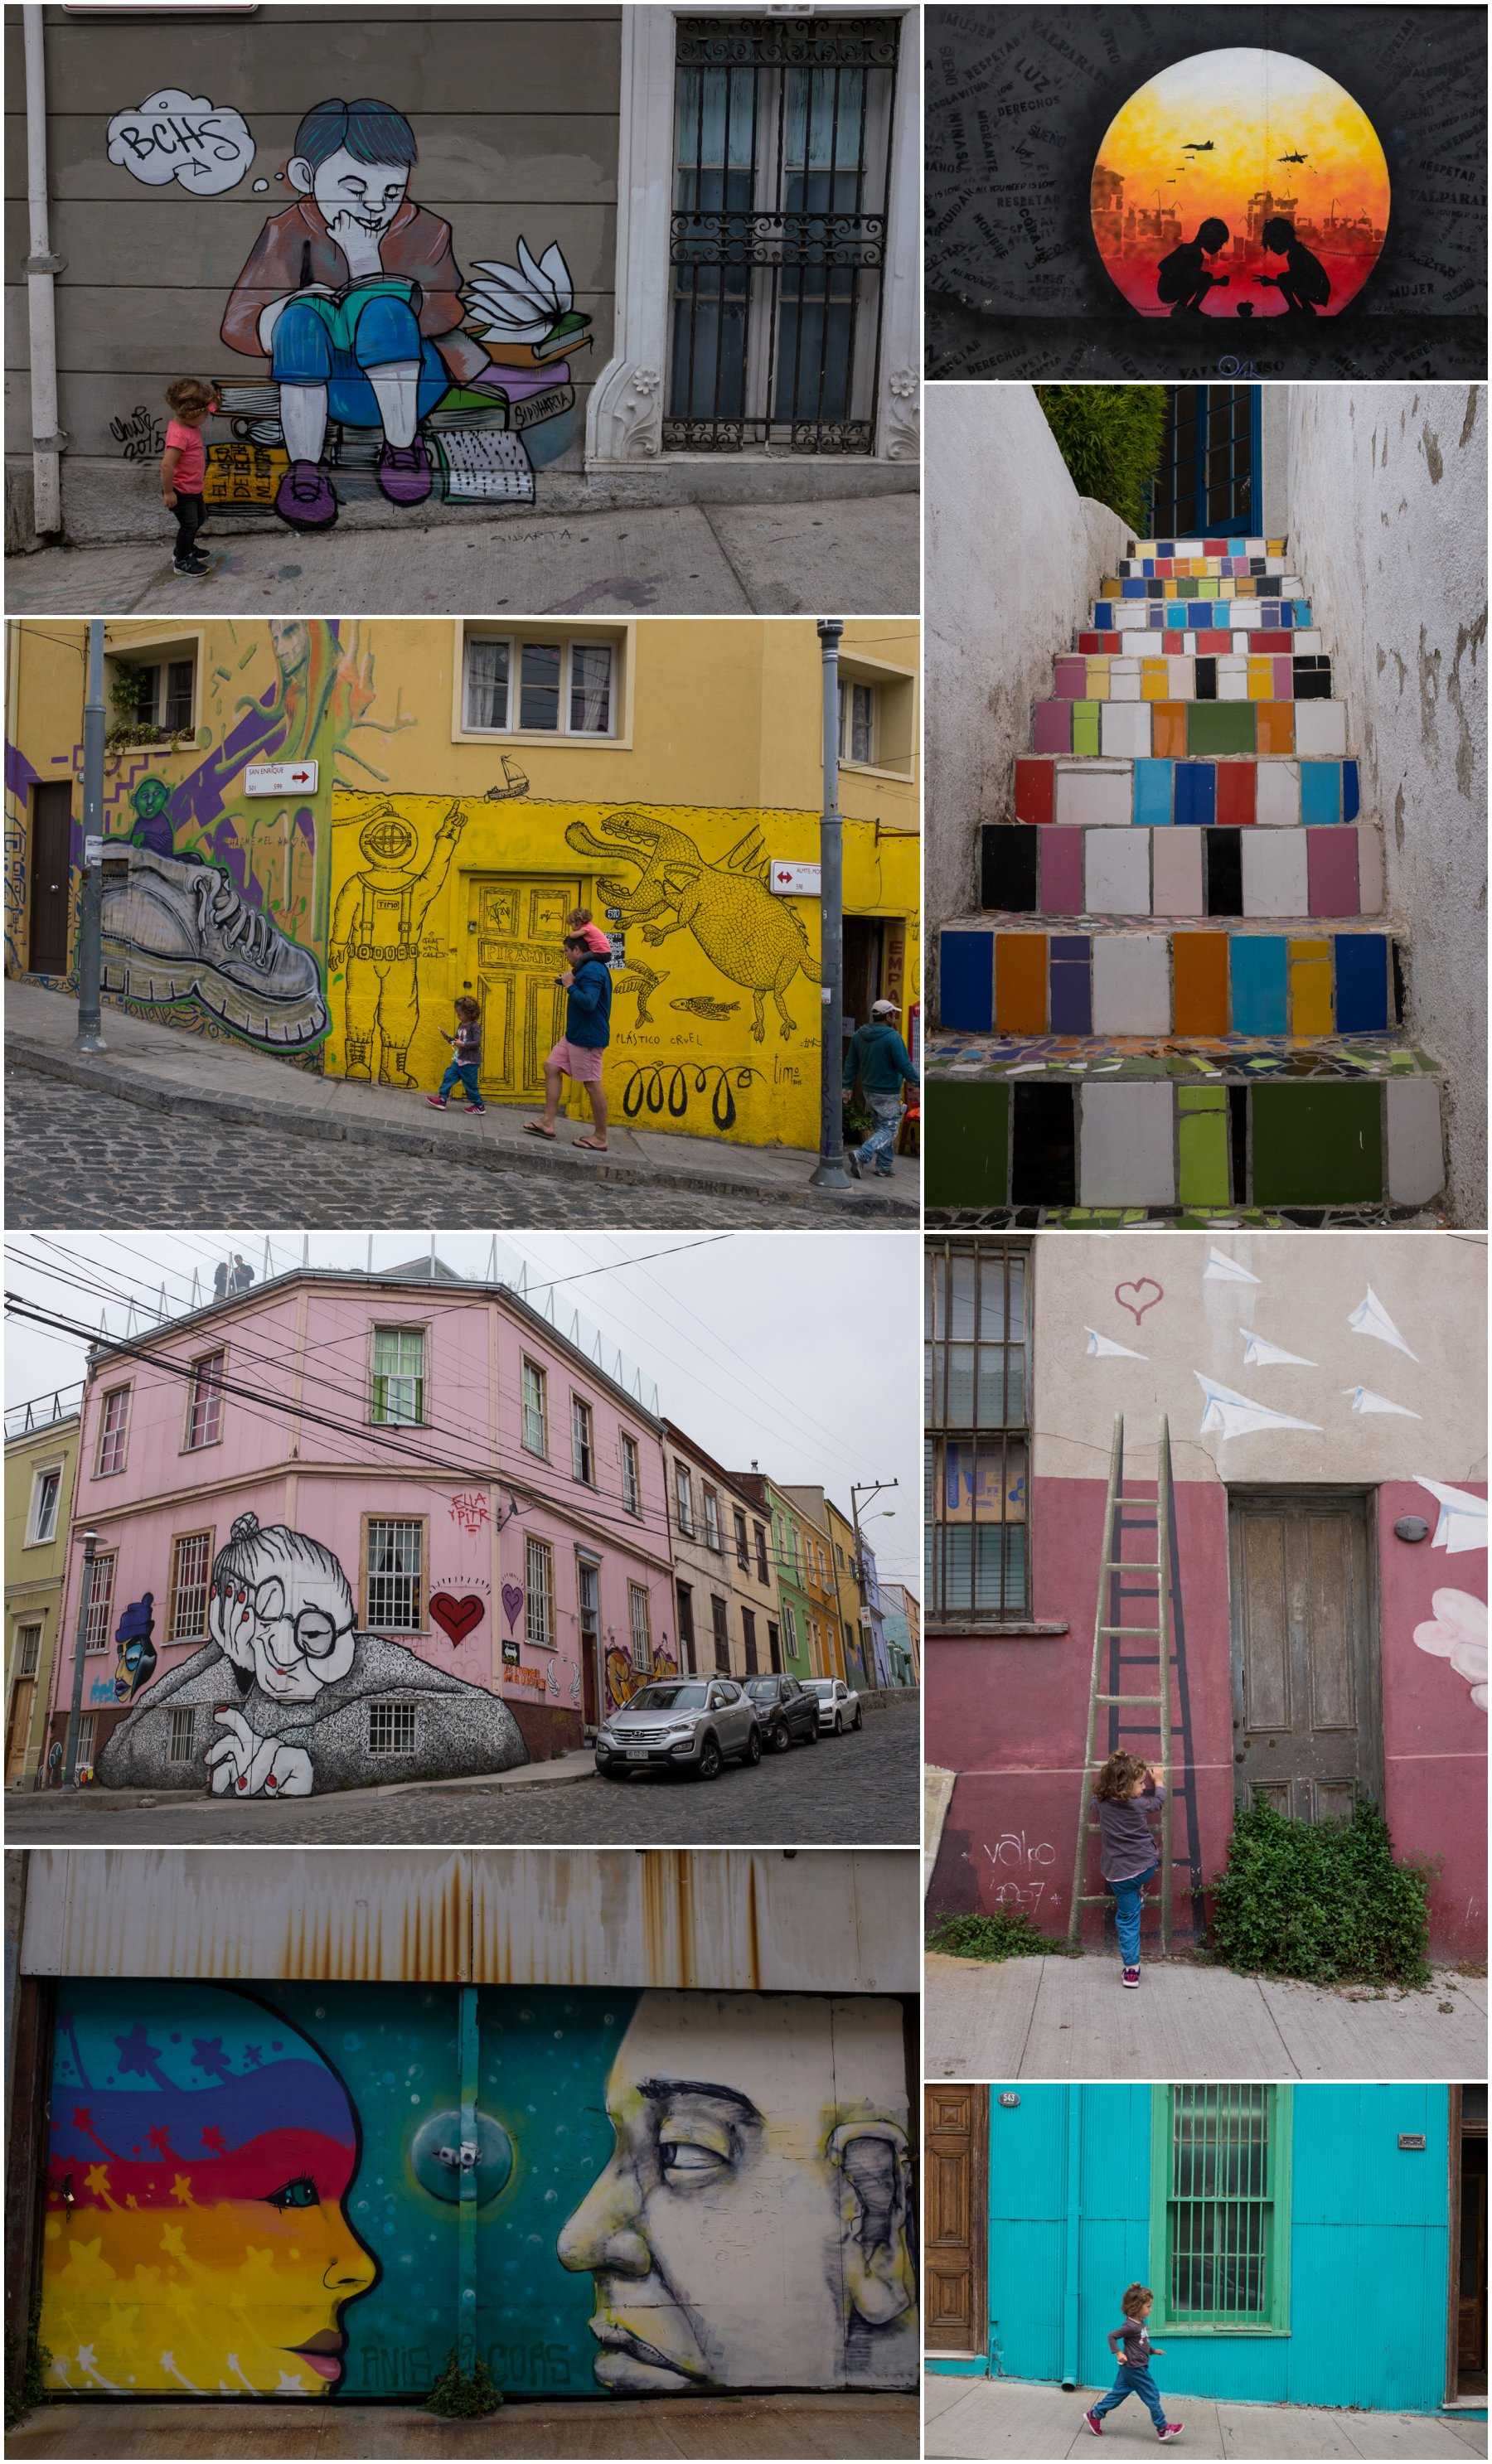 Colourful chaos in the hills of Valparaiso. We spent a day running amok from one decorated wall to the next.